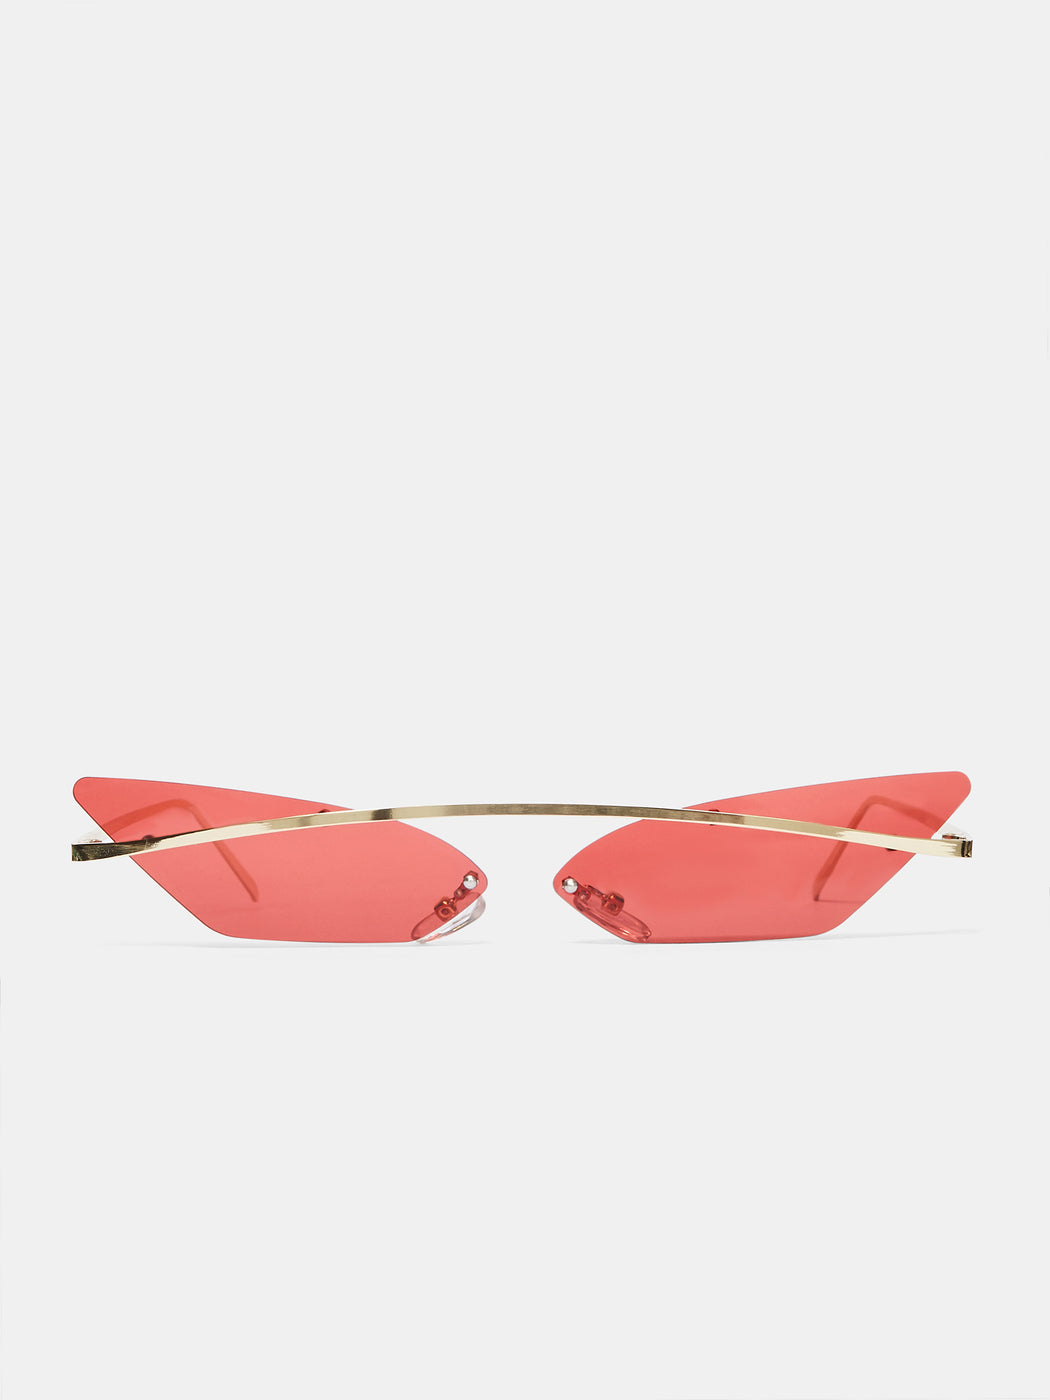 Nida Sunglasses